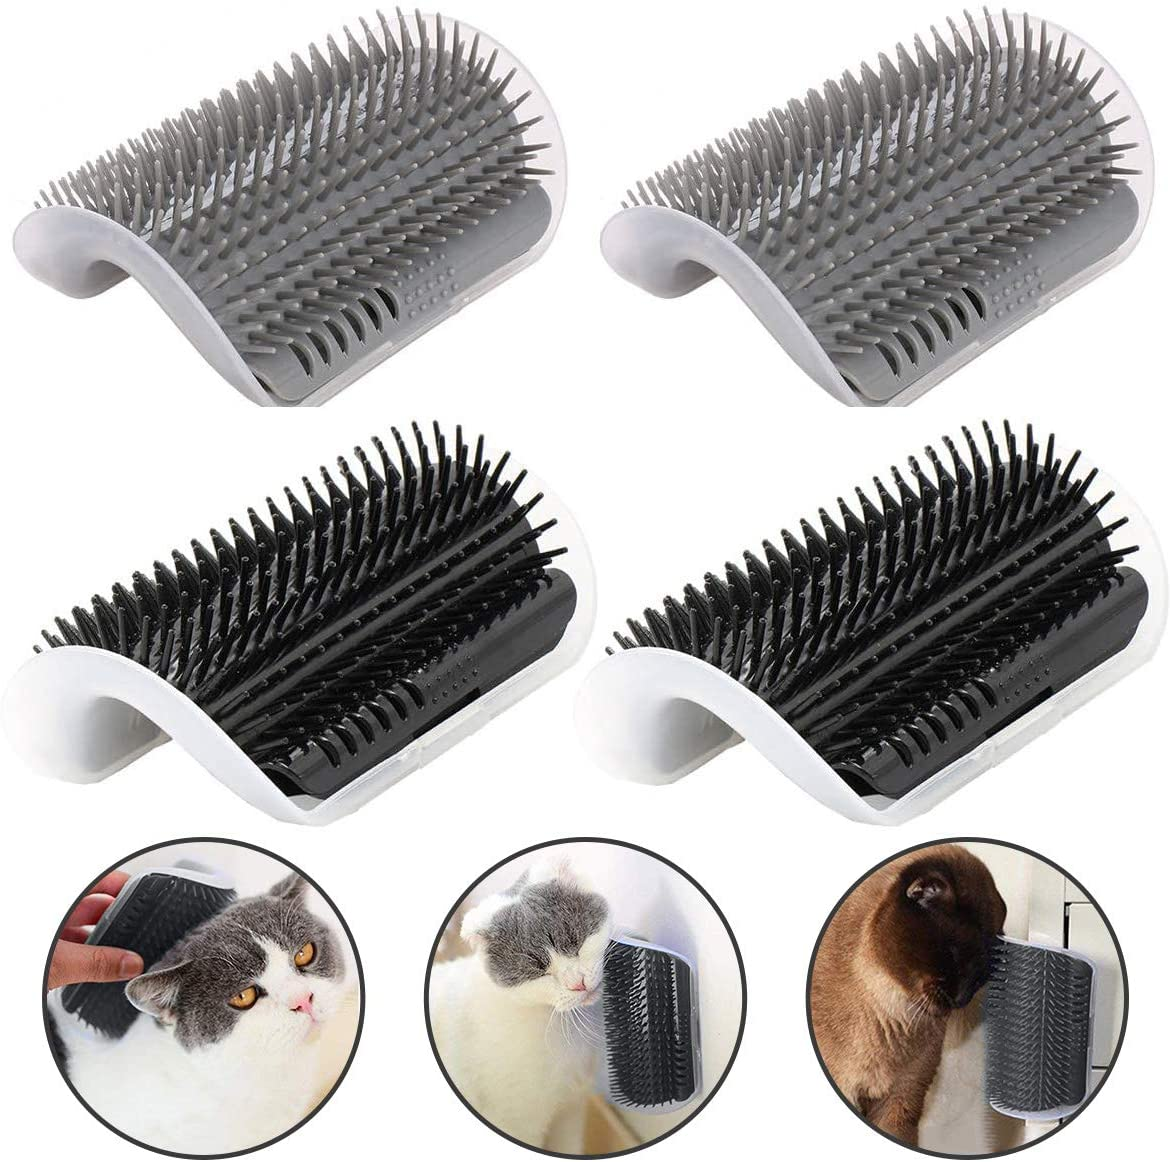 CLKHOWL Cat Self Groomer,4 Pack Cats Wall Corner Groomer Brush with Catnip, Grooming Brush Tool Massage Comb for Kitten Puppy(Grey and Black)